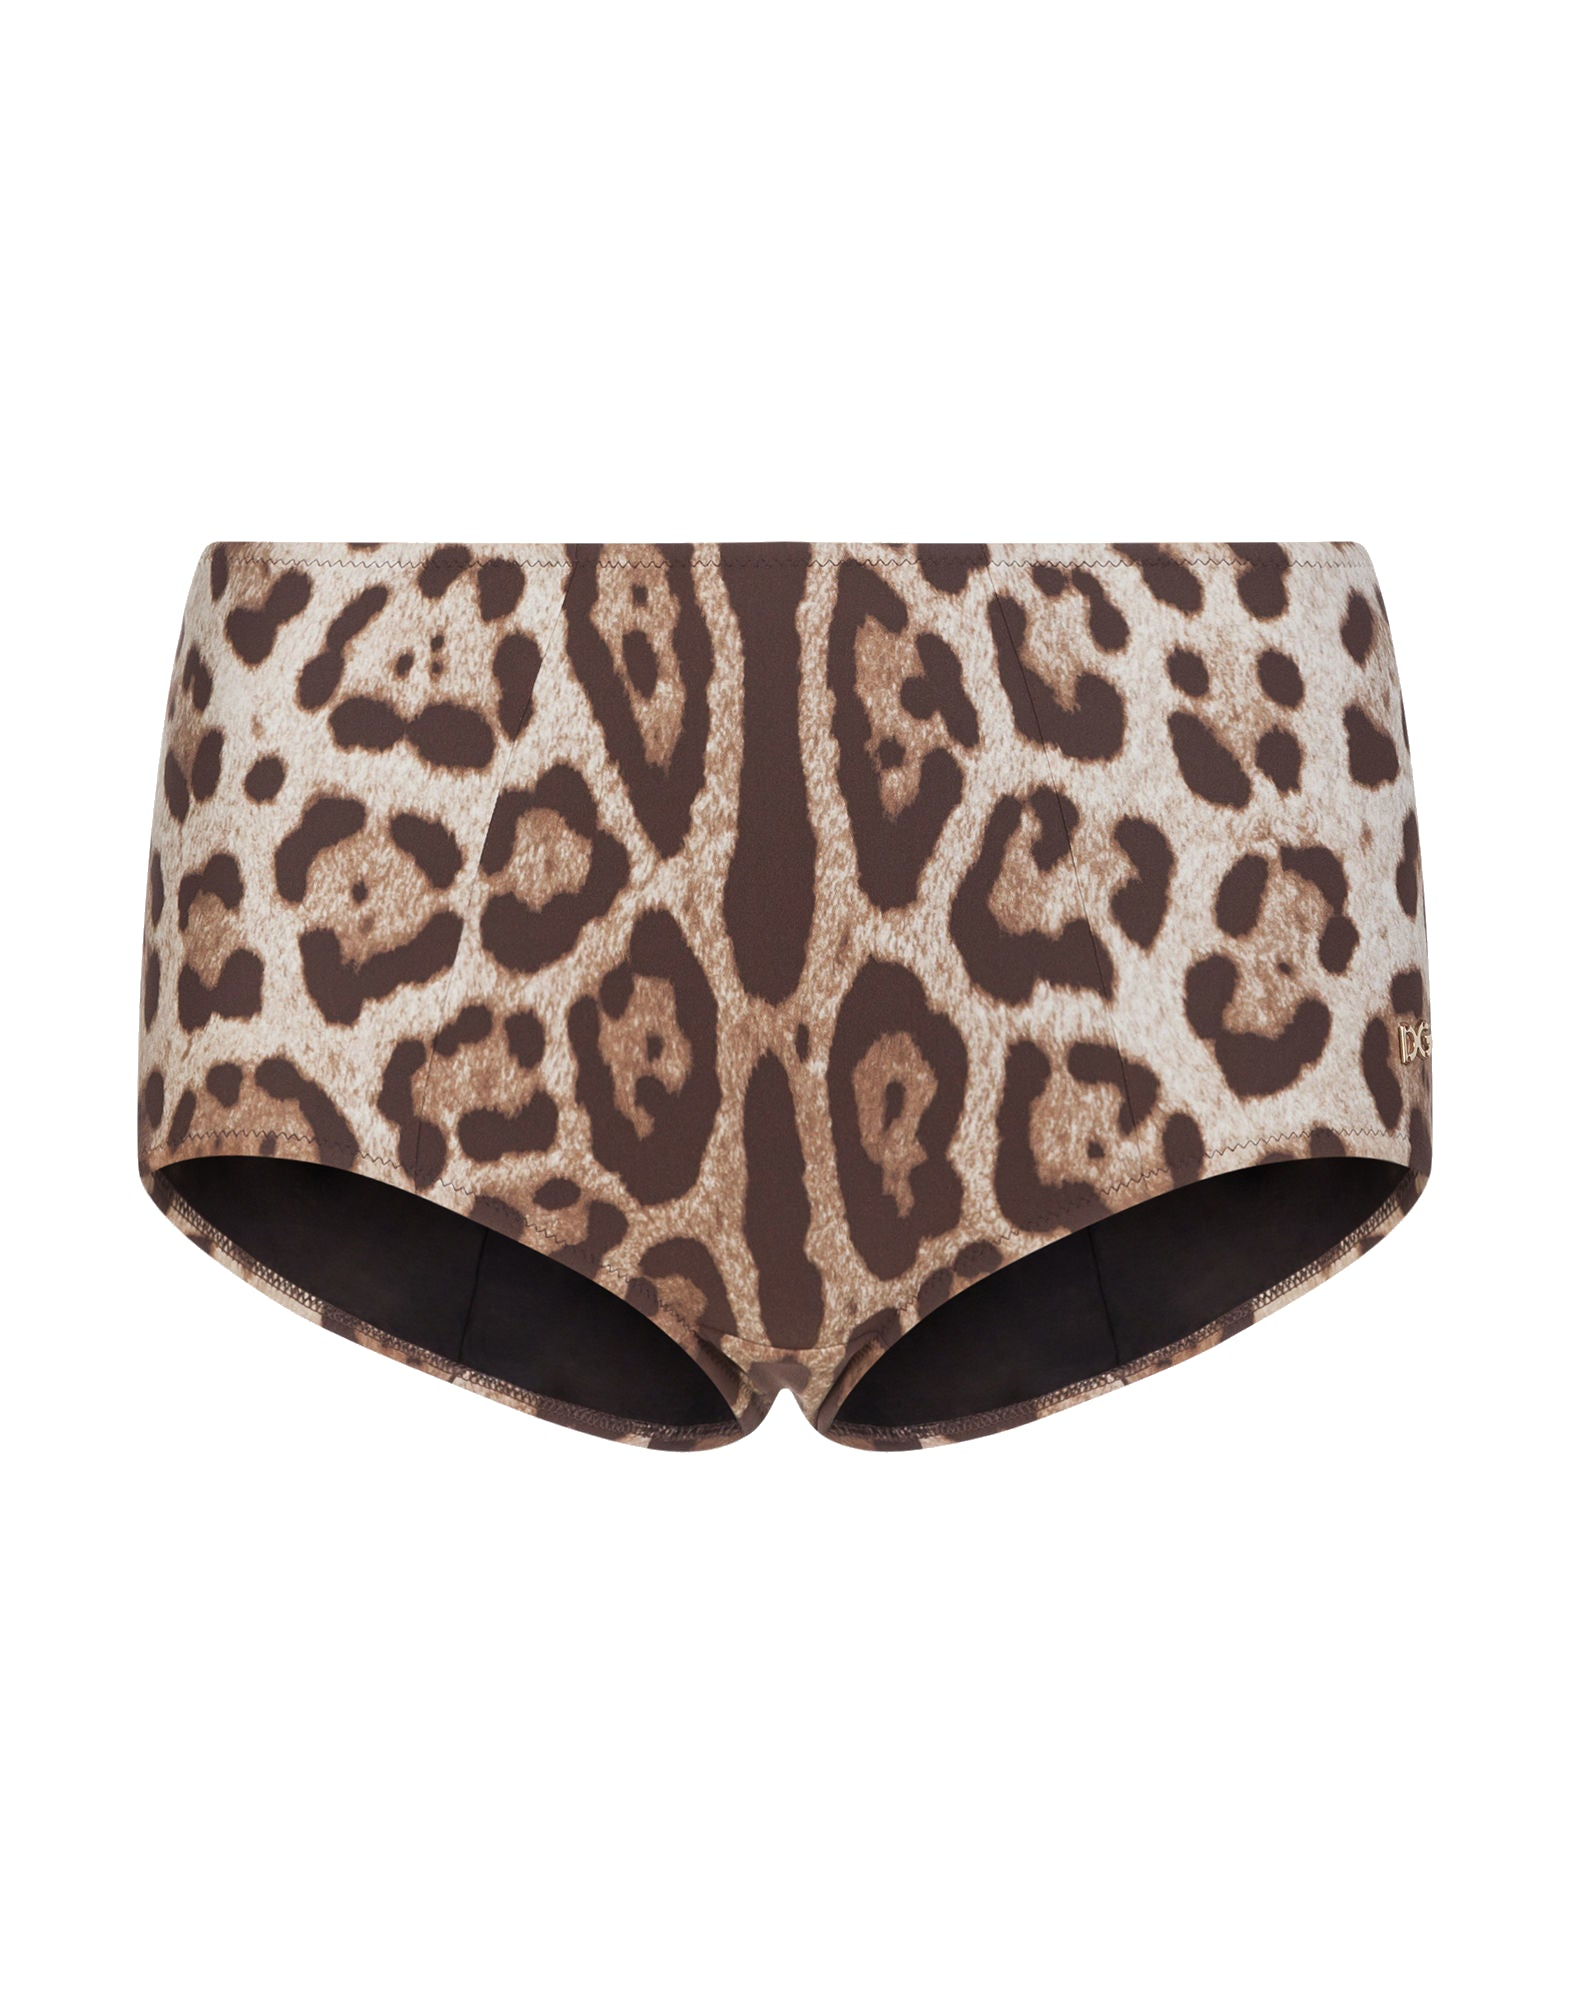 leopard print high-waisted bikini bottoms